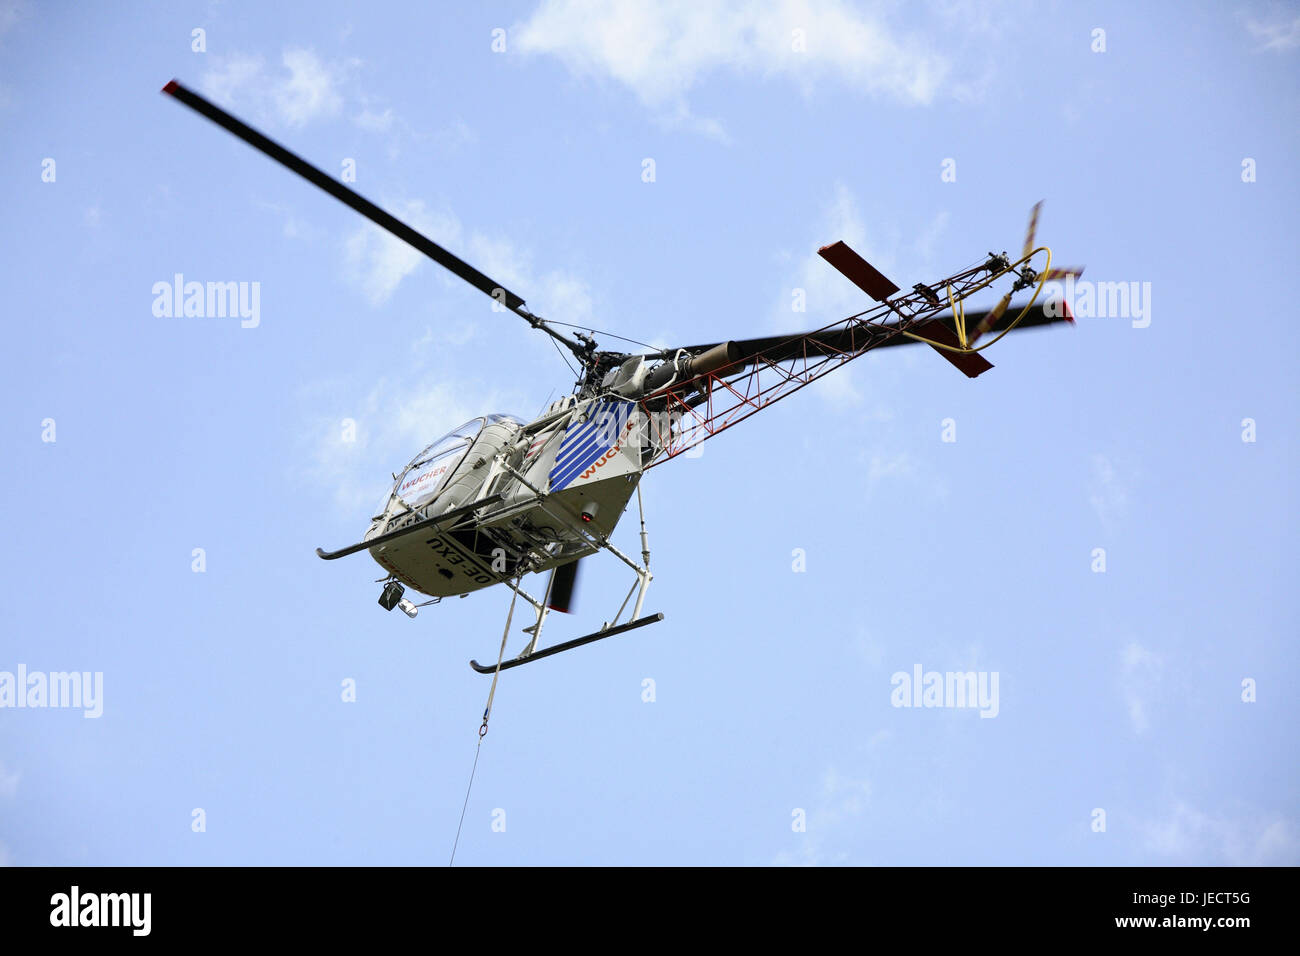 Cloudy skies, costs helicopters, from below, helicopter, helicopter, fly, helicopter flight, costs, transport, transport - Stock Image